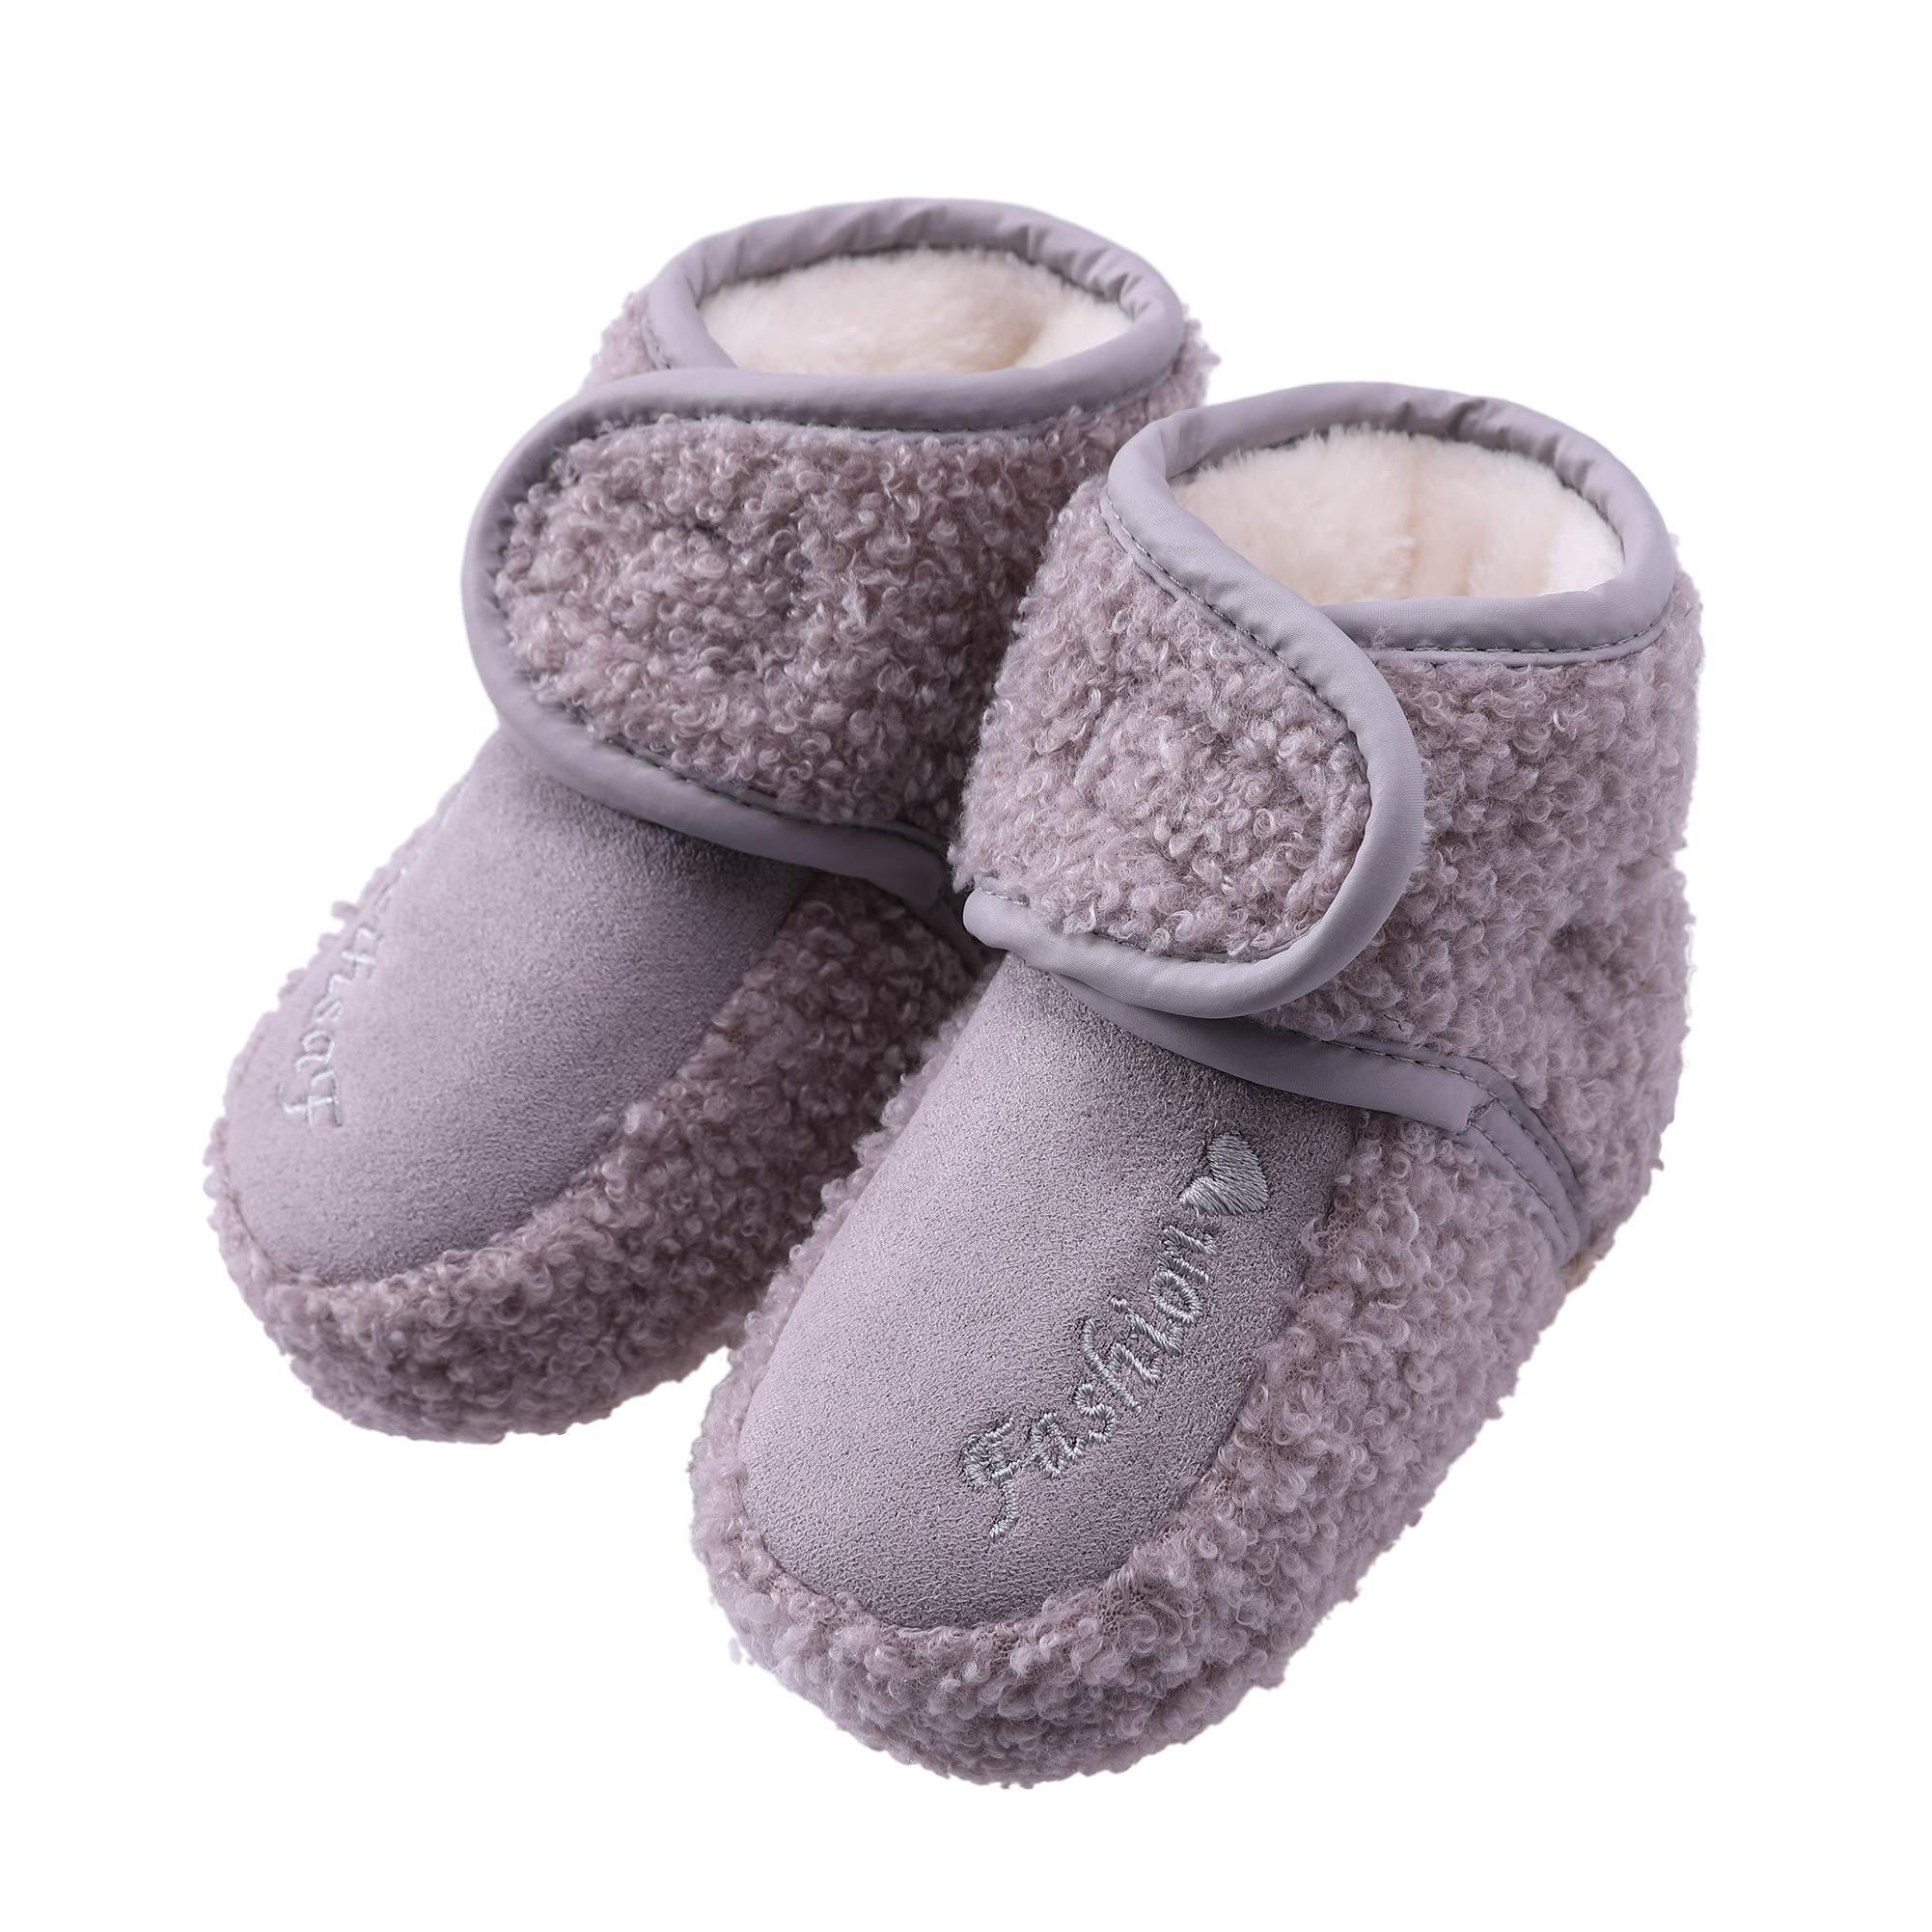 YEBING Baby Girls Boys Newborn Infant Super Warm Soft Fleece Slippers Booties with Grippers for 0-18 Month,3 Colors Availabled (Large / 12-18 Month, Gray)